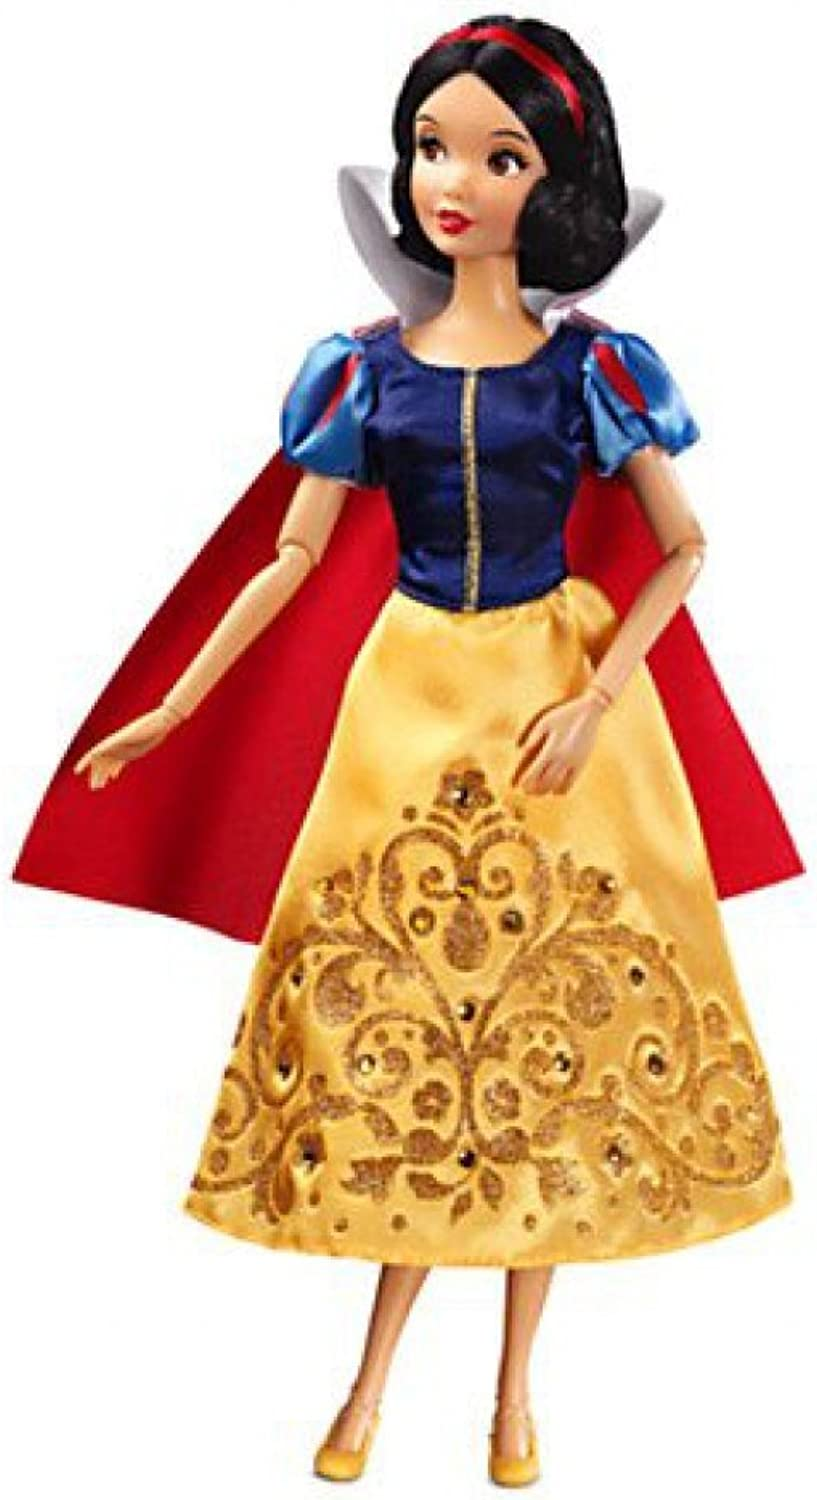 About 30cm parallel import goods Disney Disney classic Snow White Doll (japan import)